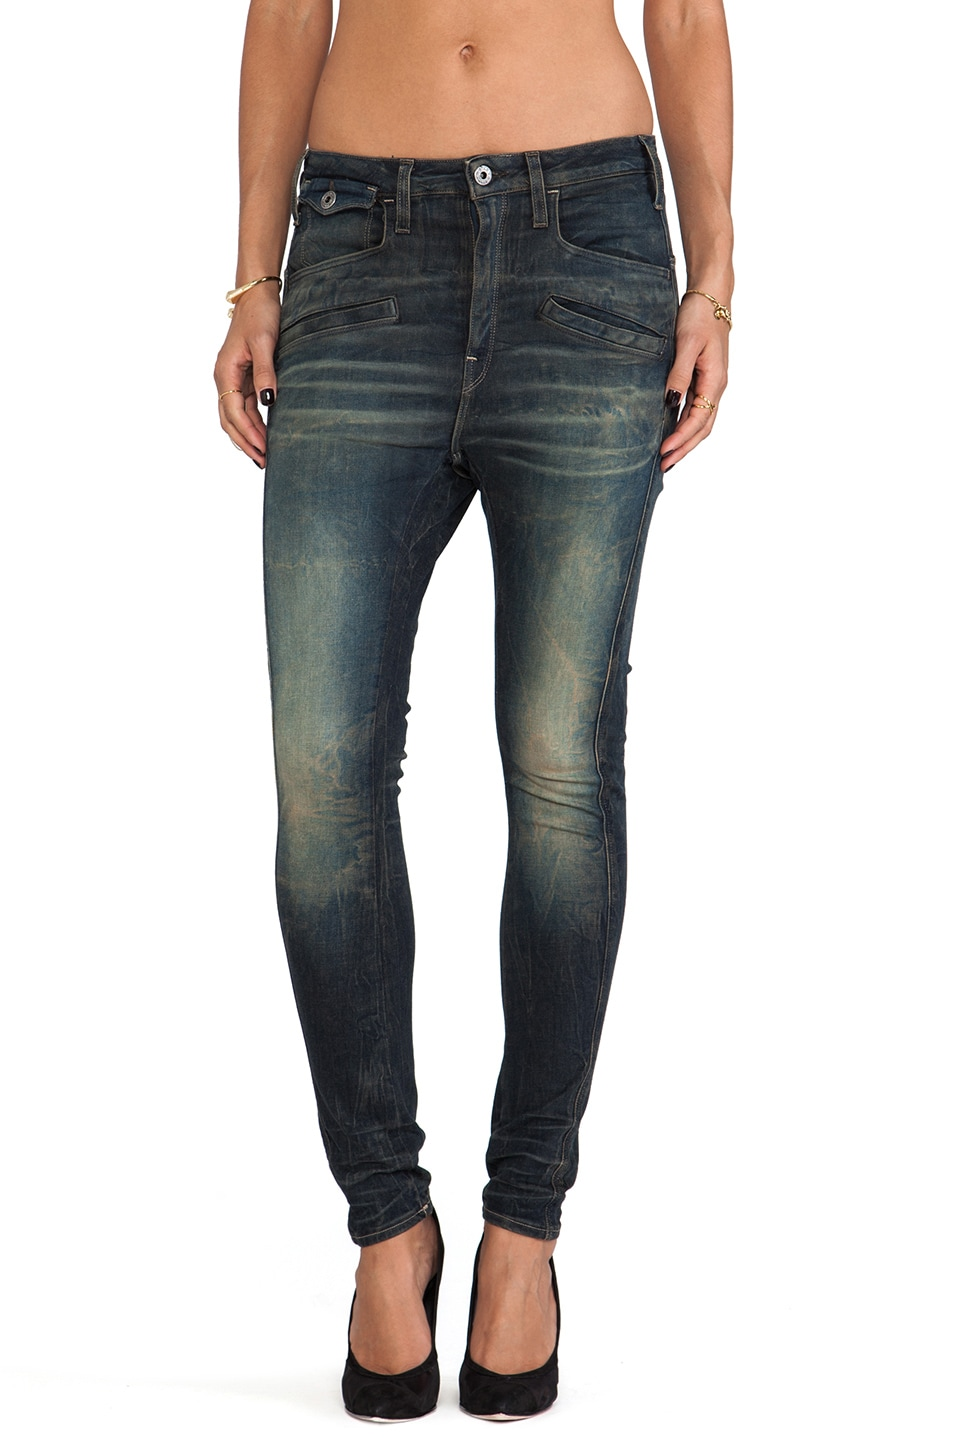 G-Star Davin 3D Tapered Jeans in Comfort Blight Dark Aged